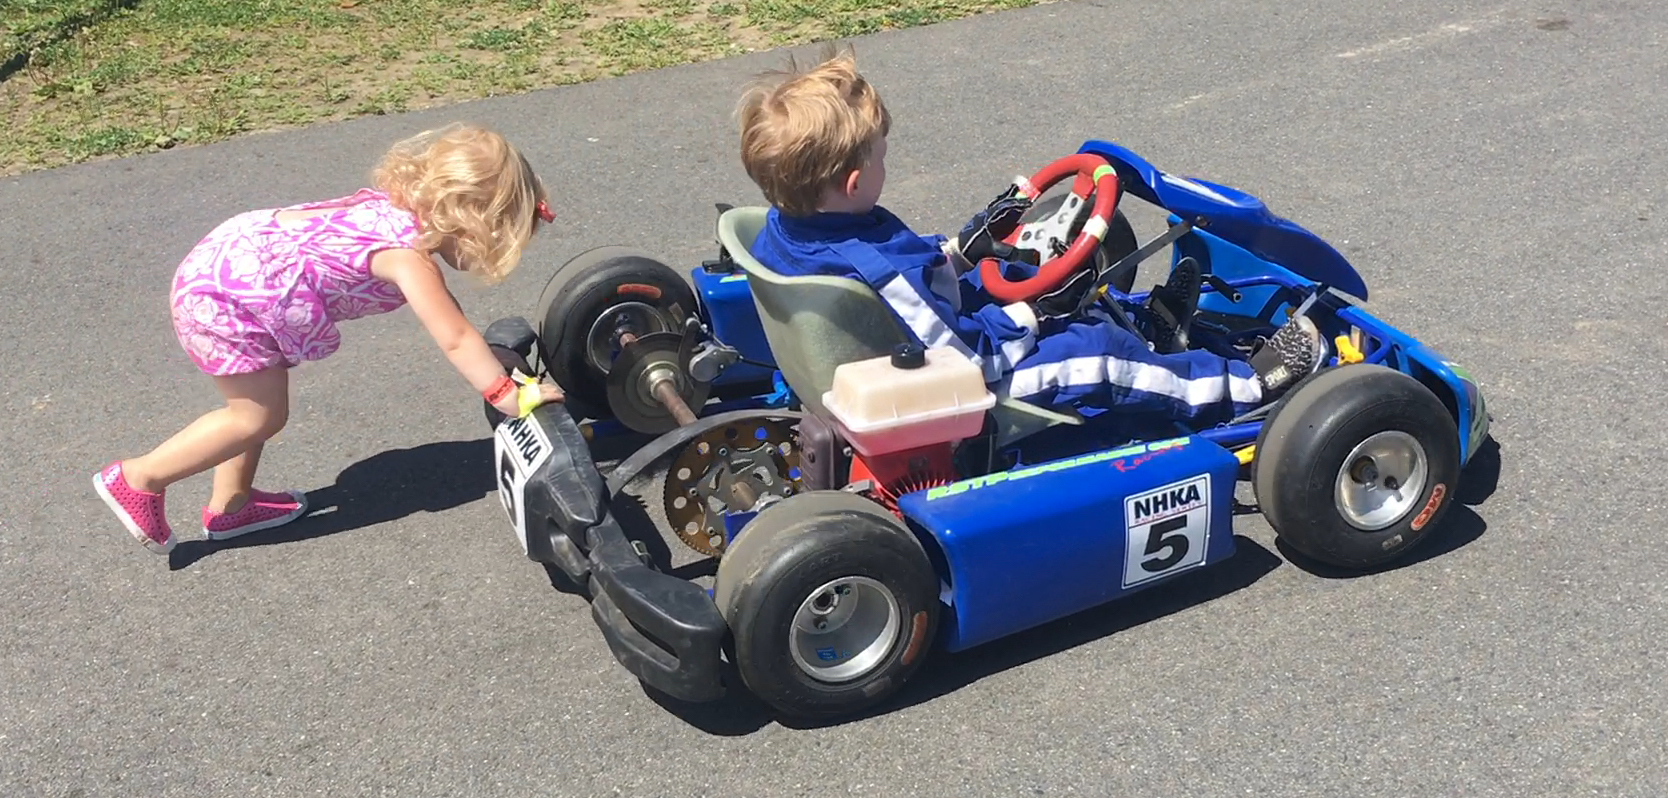 NHKA Racing Series – Real Go-Kart Racing for Adults and Kids in New ...